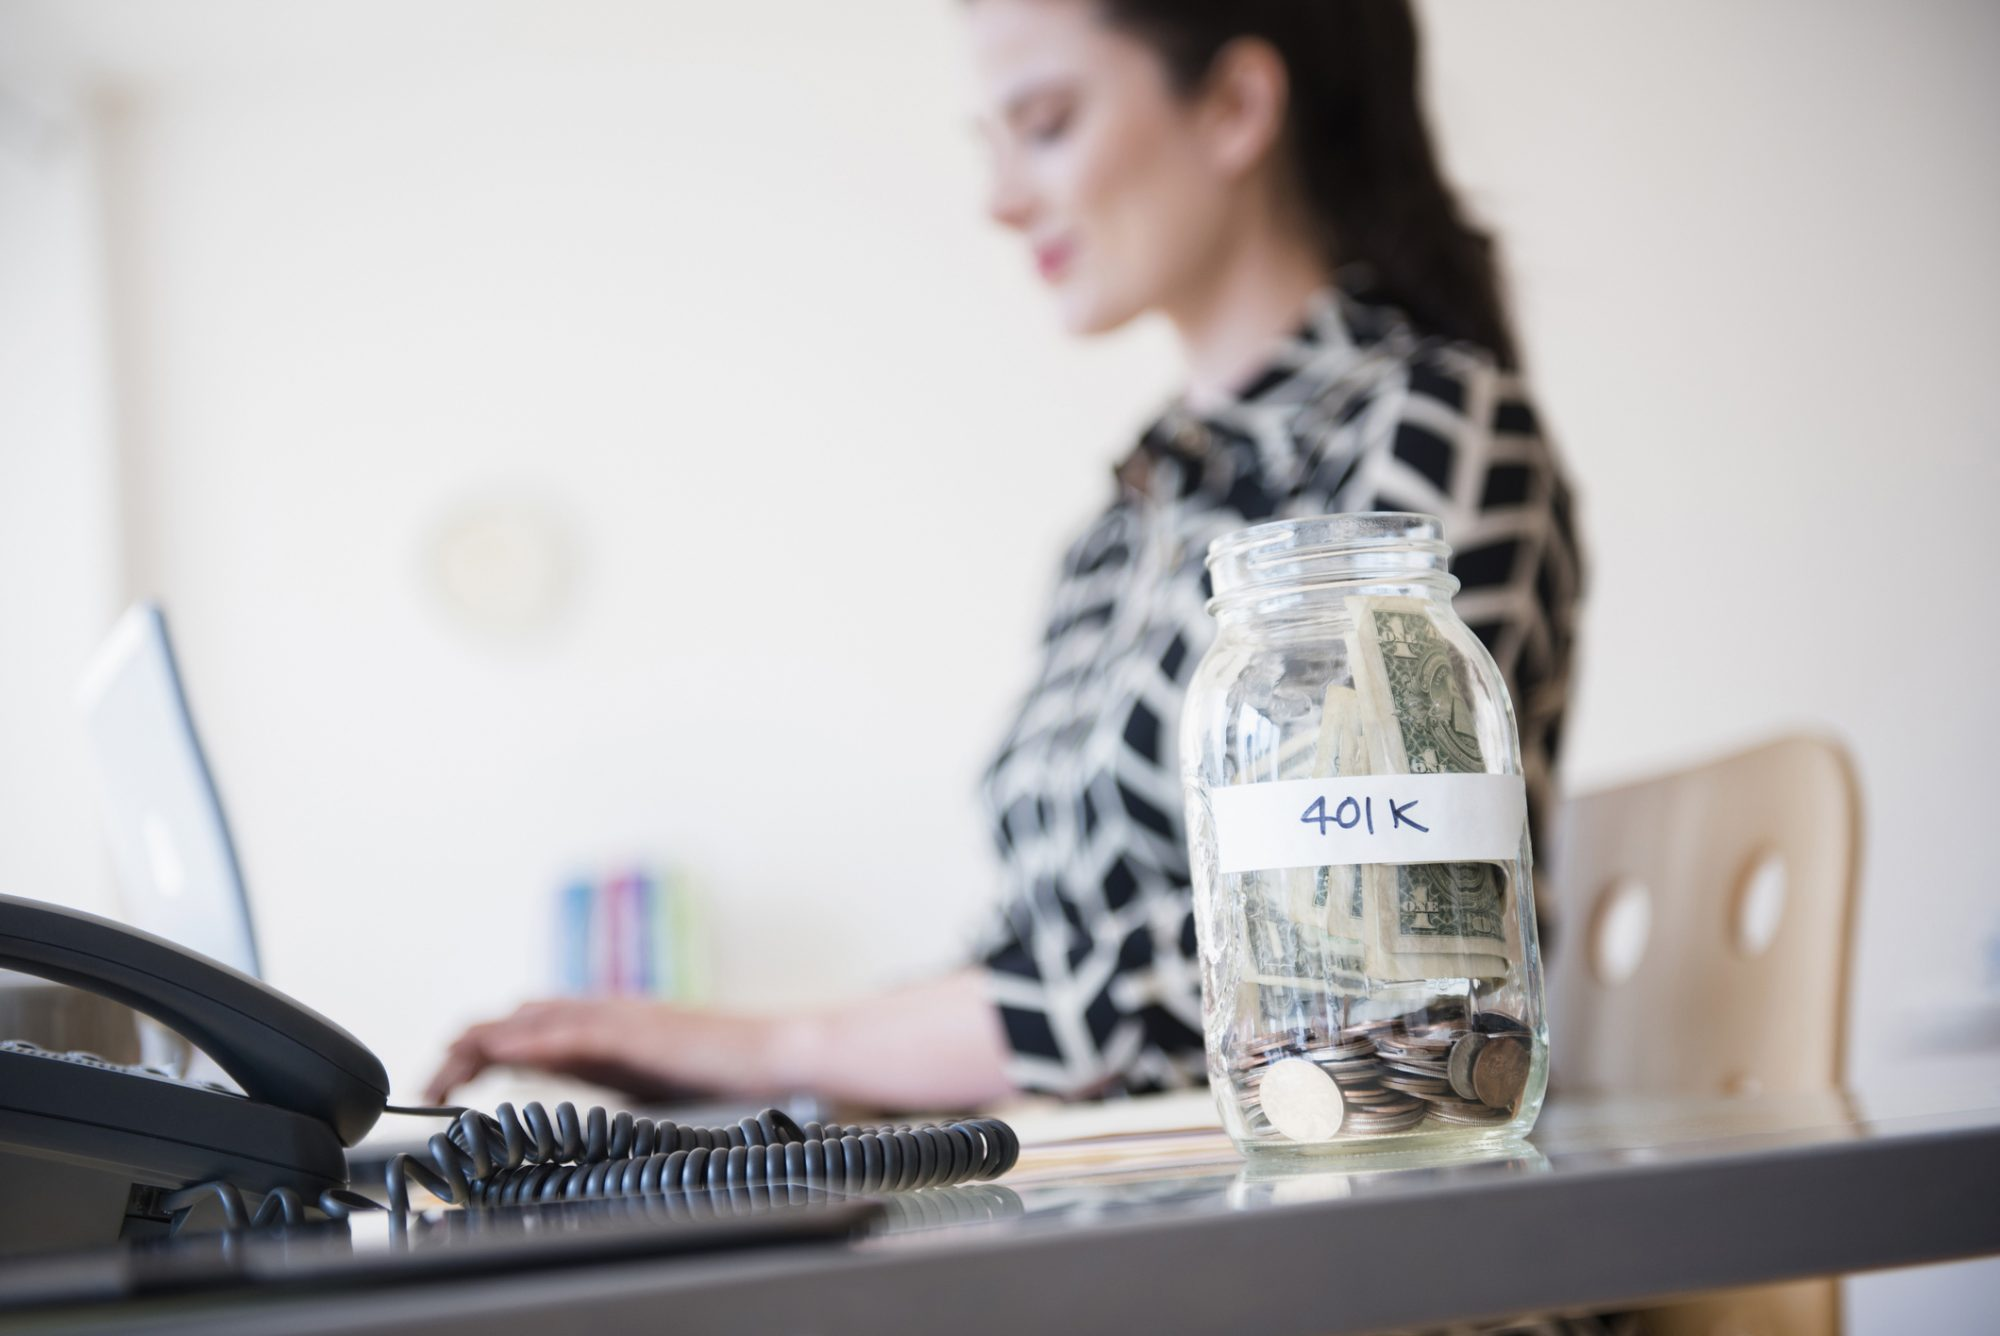 Woman with 401k jar on desk